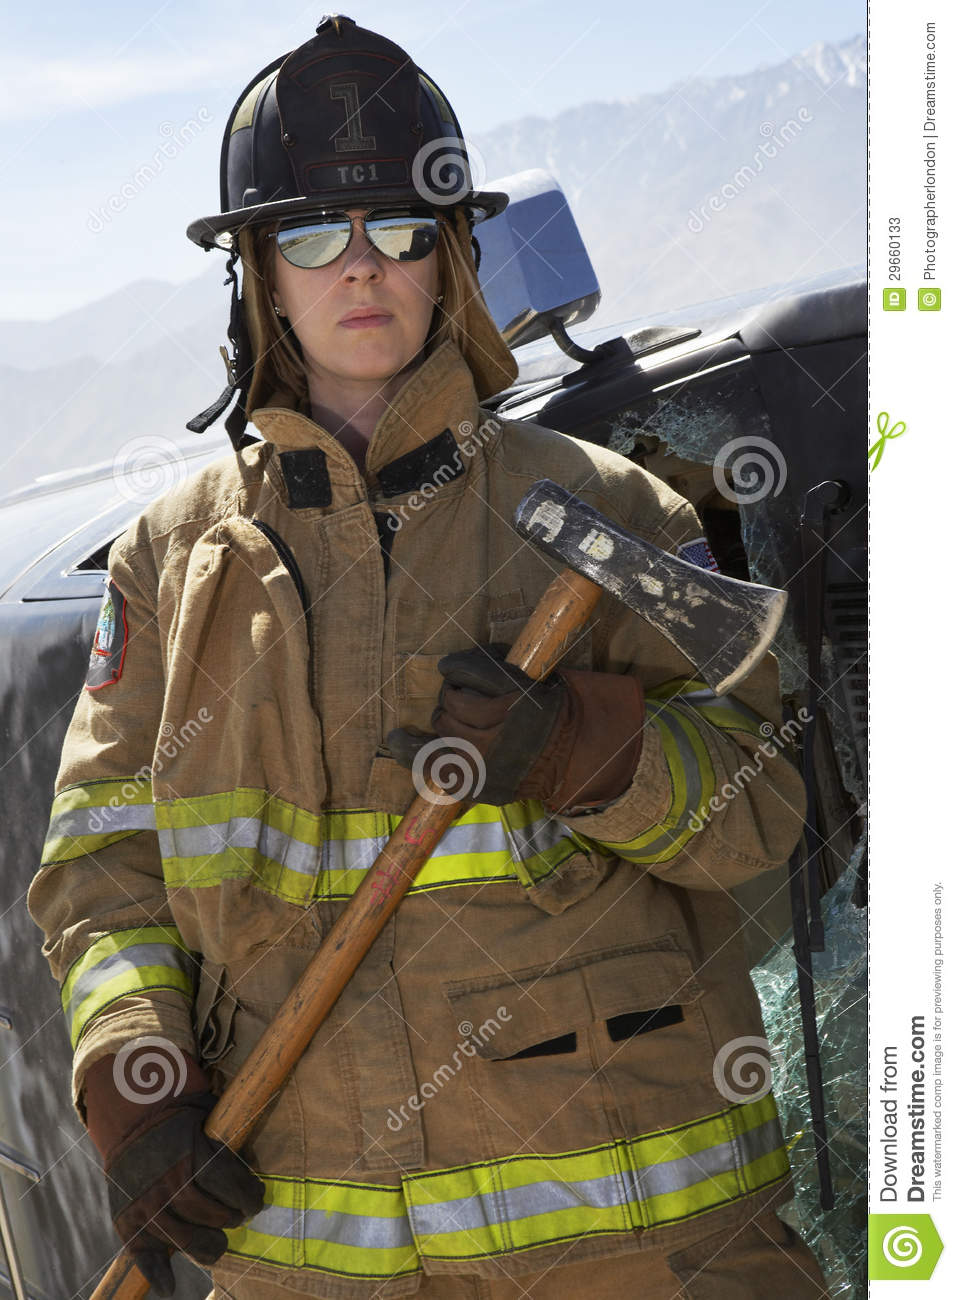 Free firefighter porn